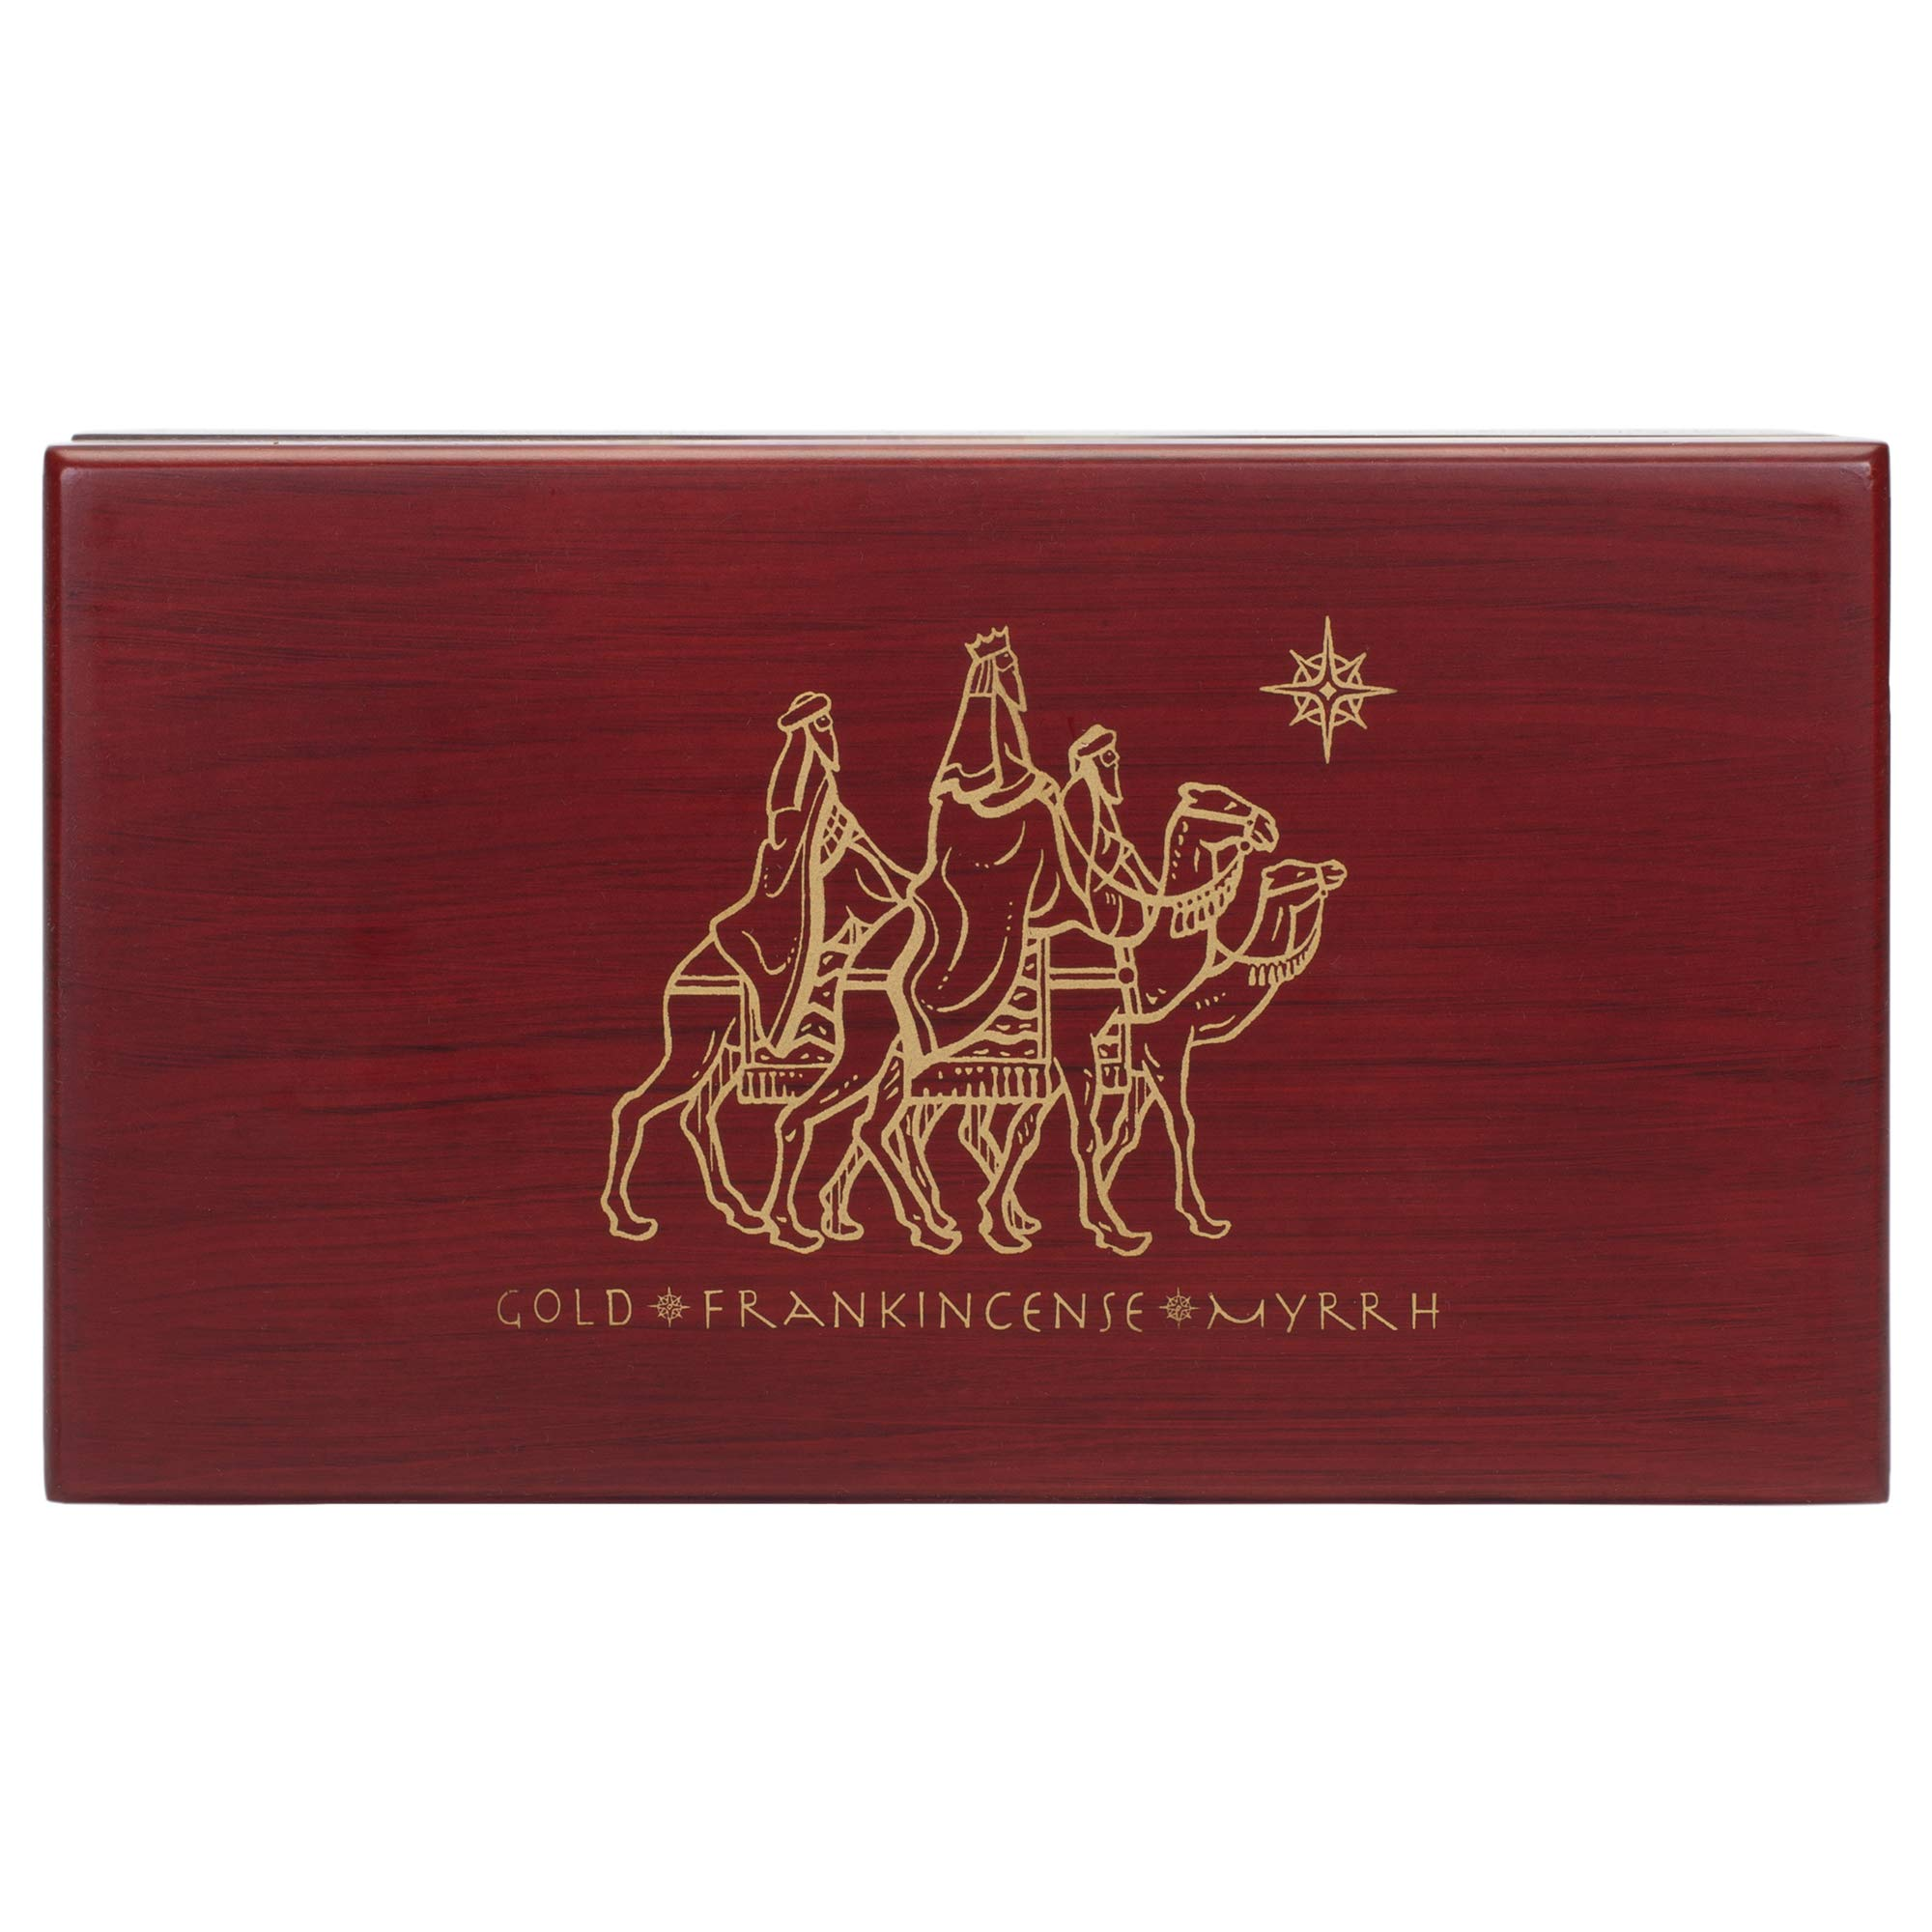 Three Kings Gifts Gold Frankincense and Myrrh Standard Single Box Set, 6 3/4 by 3 3/4 by 2-Inch by THREE KINGS GIFTS THE ORIGINAL GIFTS OFCHRISTMAS (Image #4)